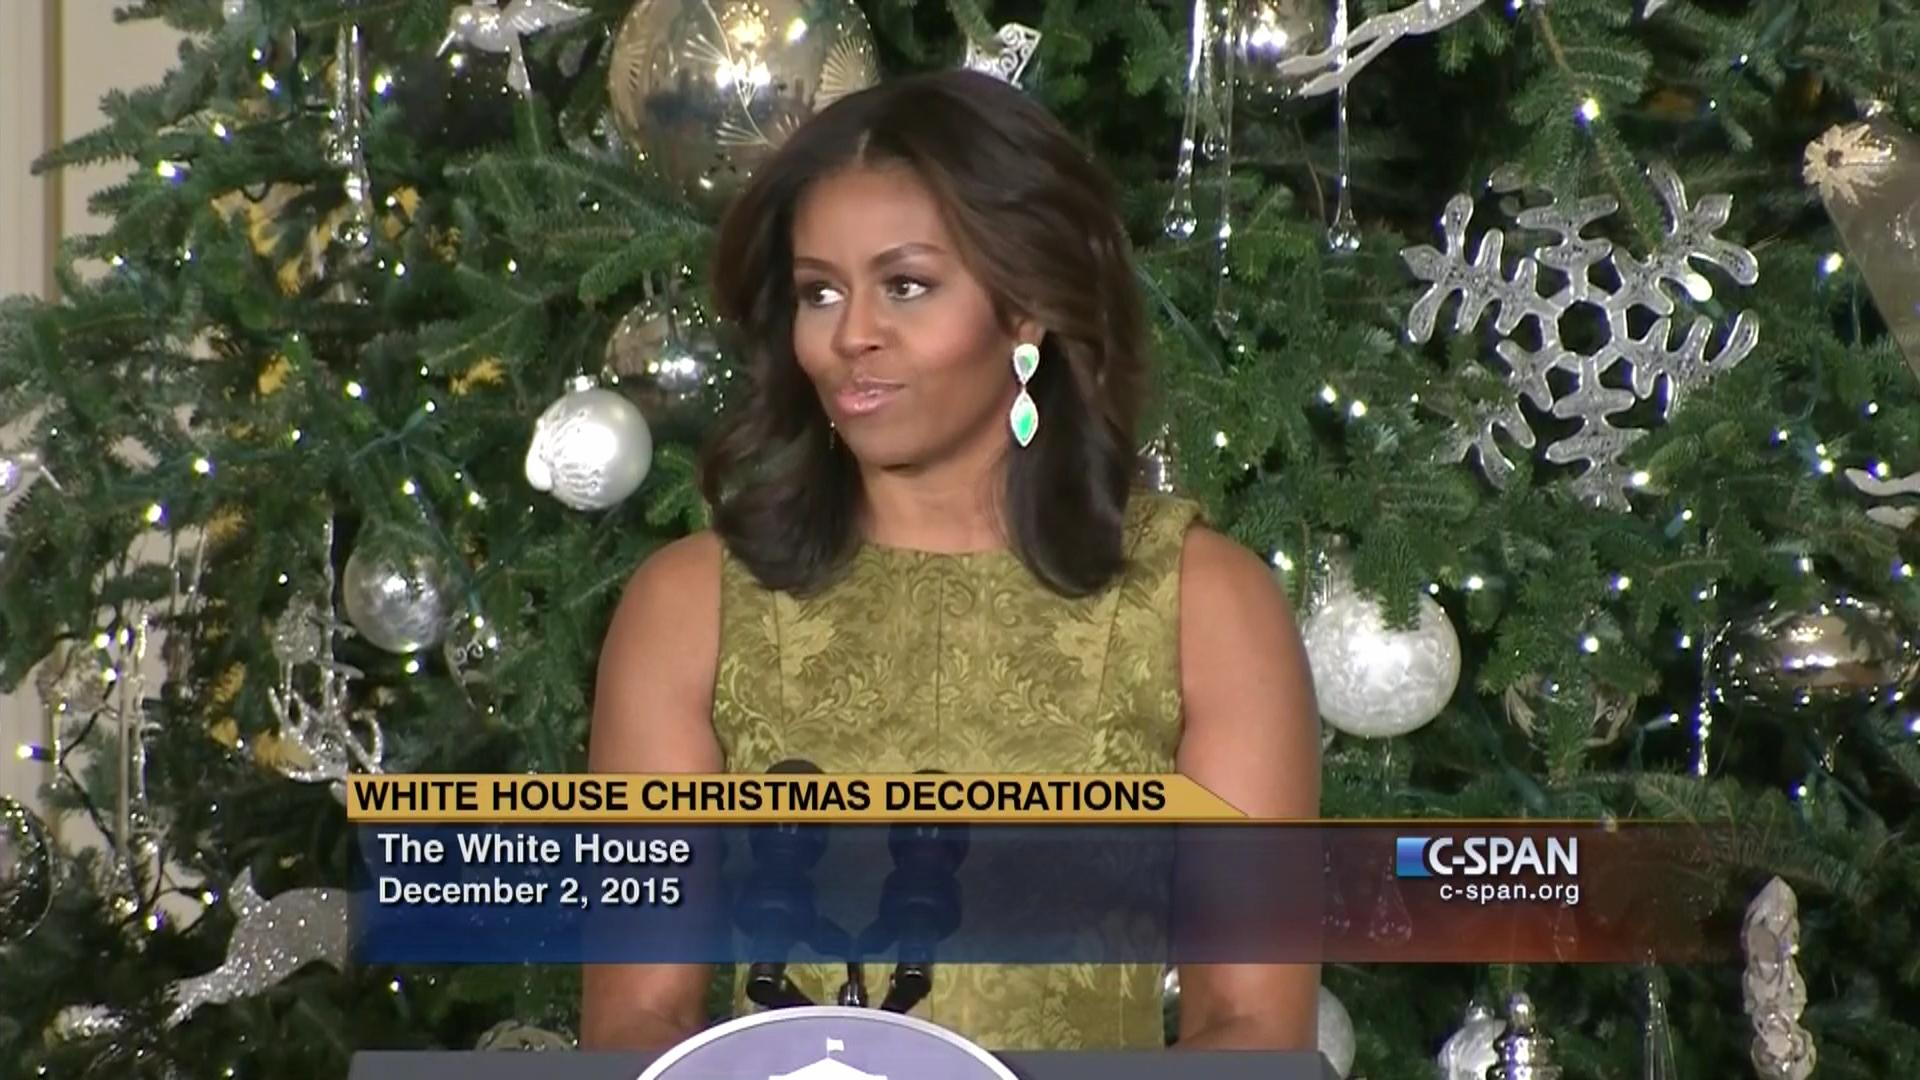 Lady Michelle Obama Remarks Christmas Decorations Dec 2 2015 C